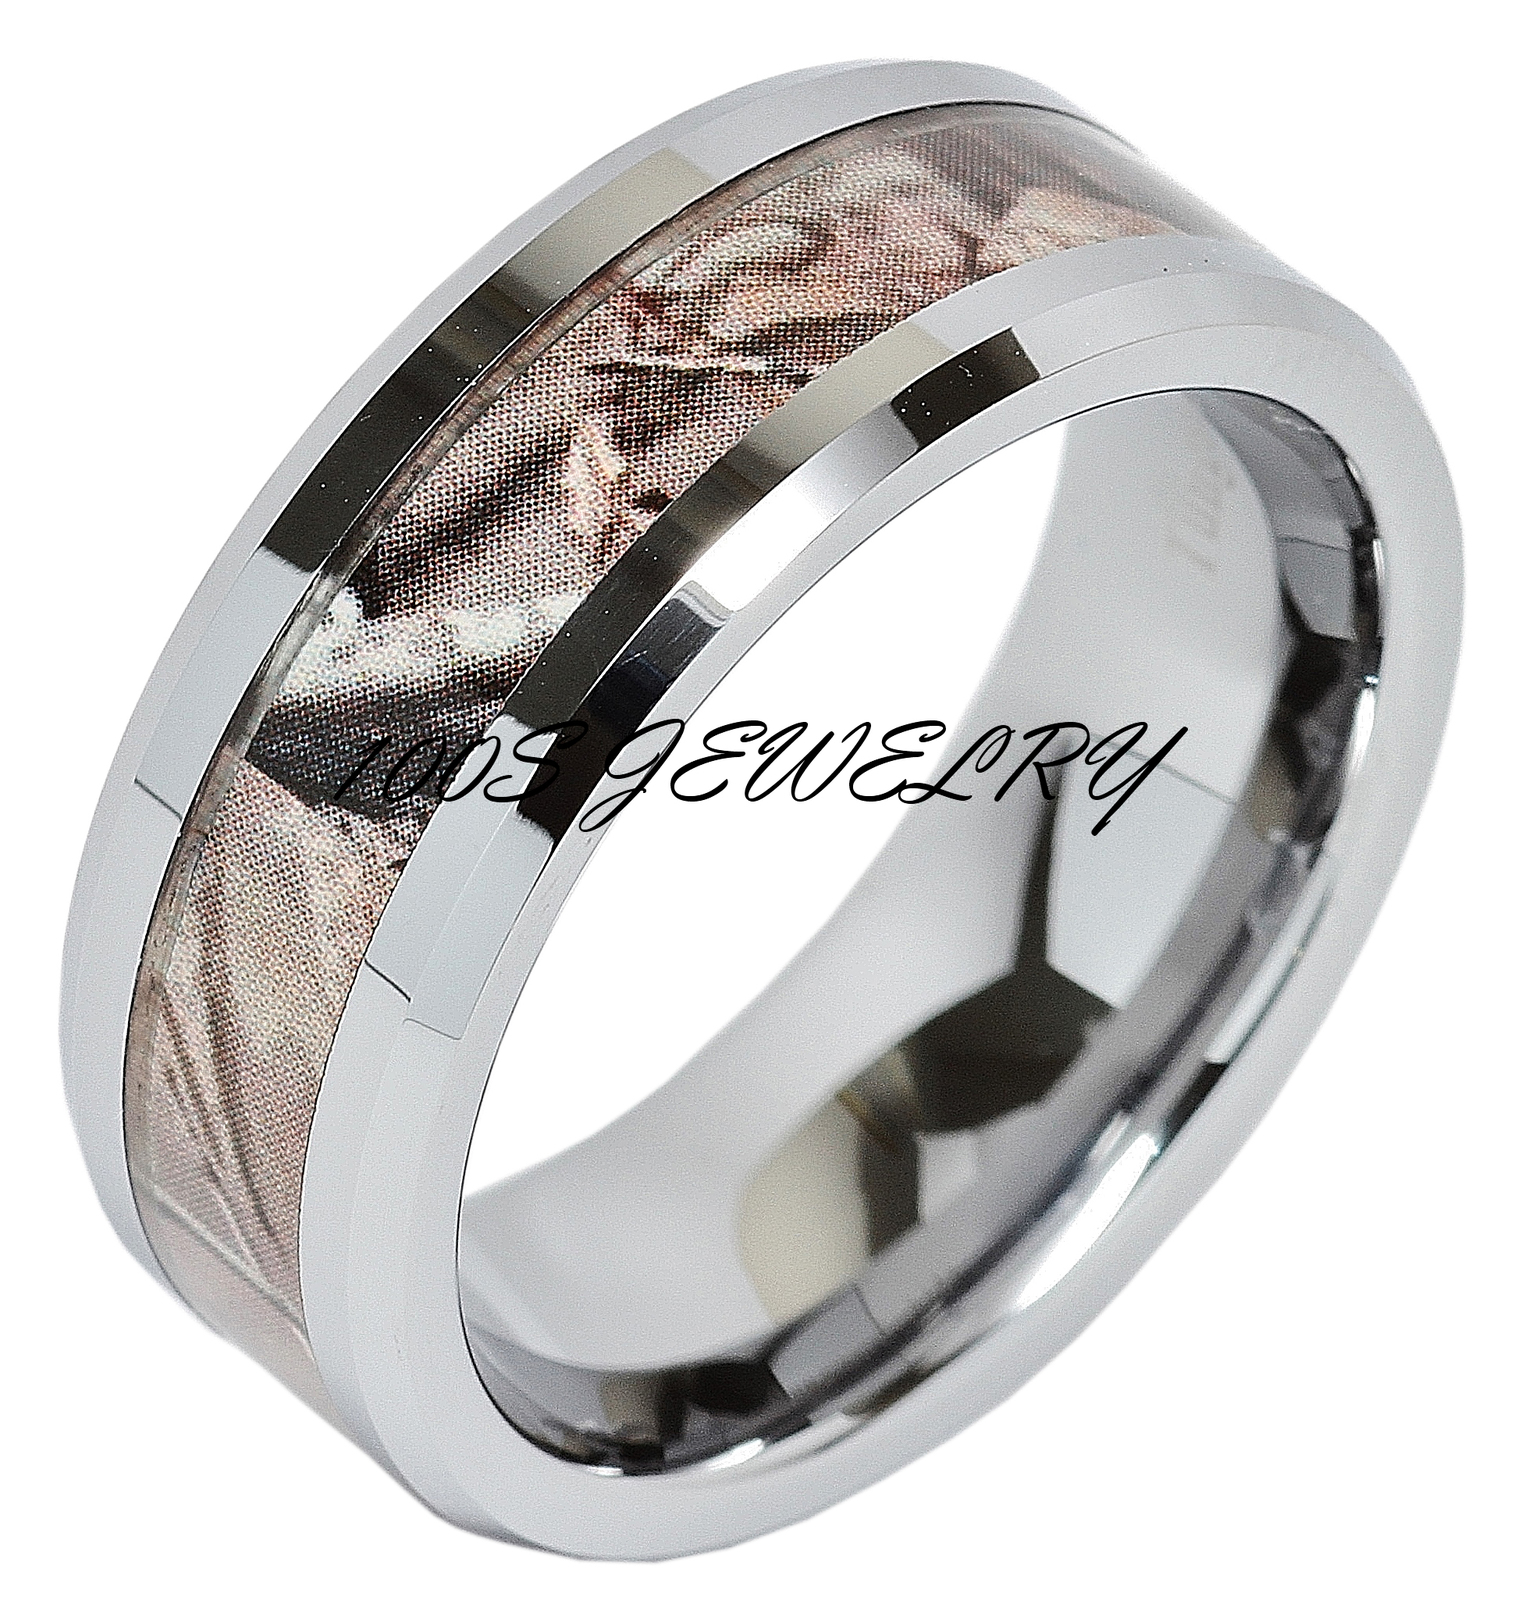 Mens jewelry king baby for sale only 4 left at 70 for King baby jewelry sale